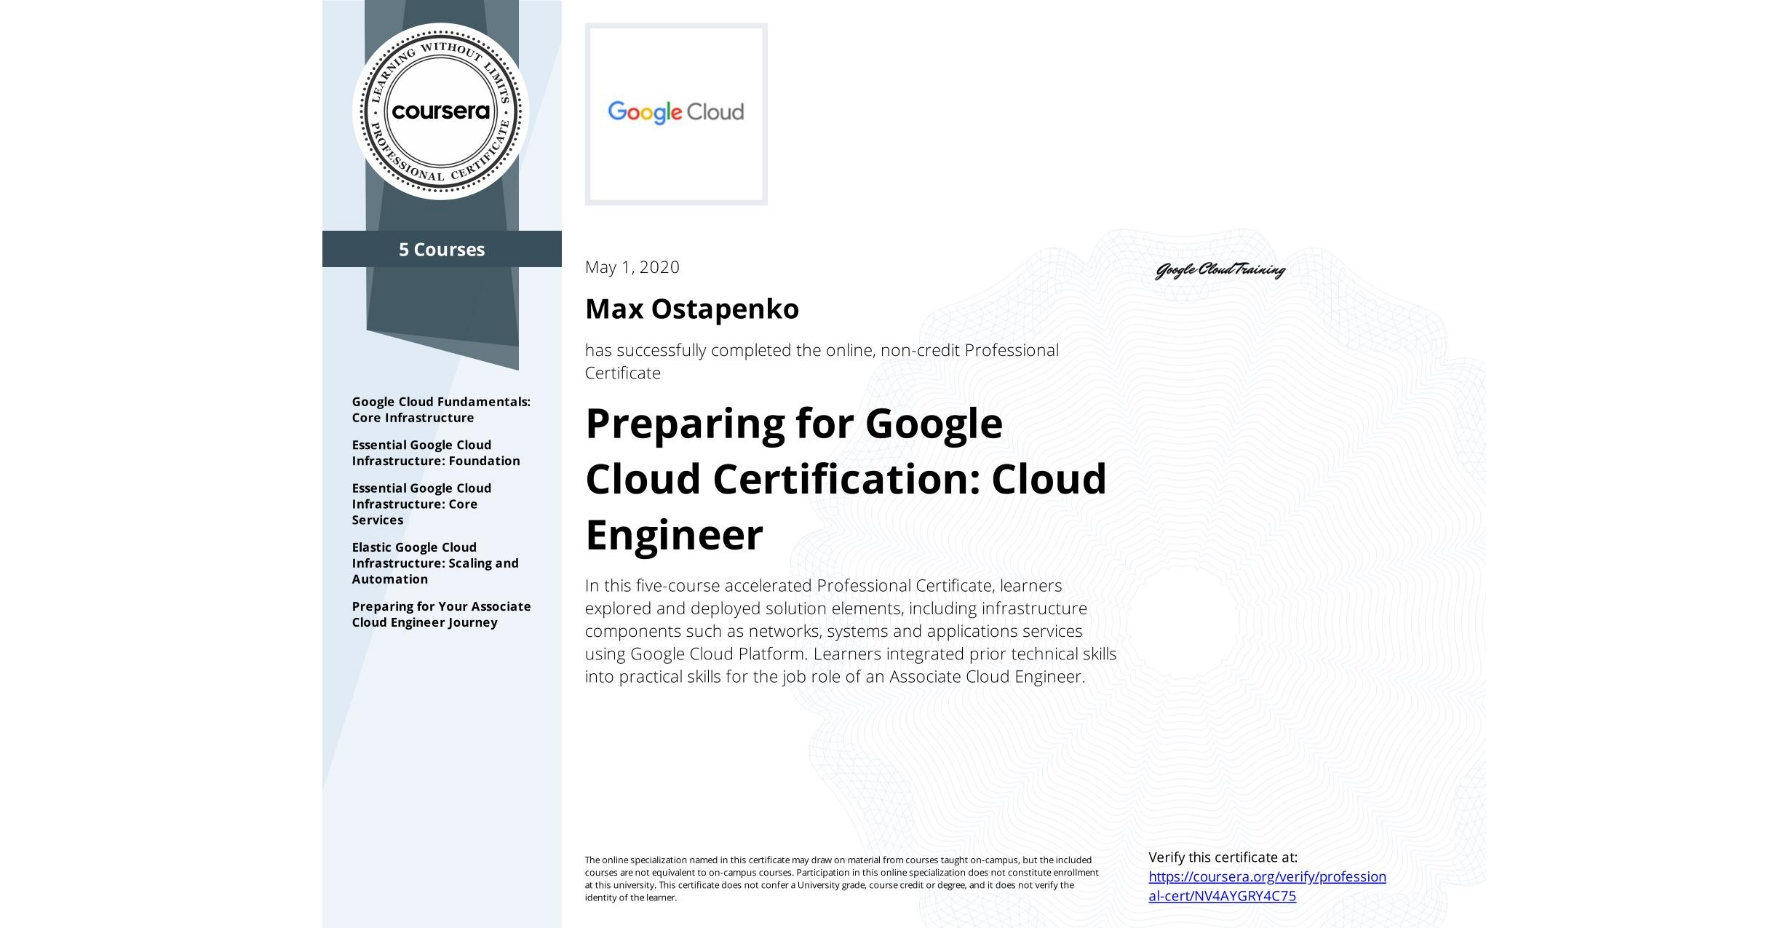 View certificate for Max Ostapenko, Cloud Engineering with Google Cloud, offered through Coursera. In this five-course accelerated Professional Certificate, learners explored and deployed solution elements, including infrastructure components such as networks, systems and applications services using Google Cloud Platform. Learners integrated prior technical skills into practical skills for the job role of an Associate Cloud Engineer.